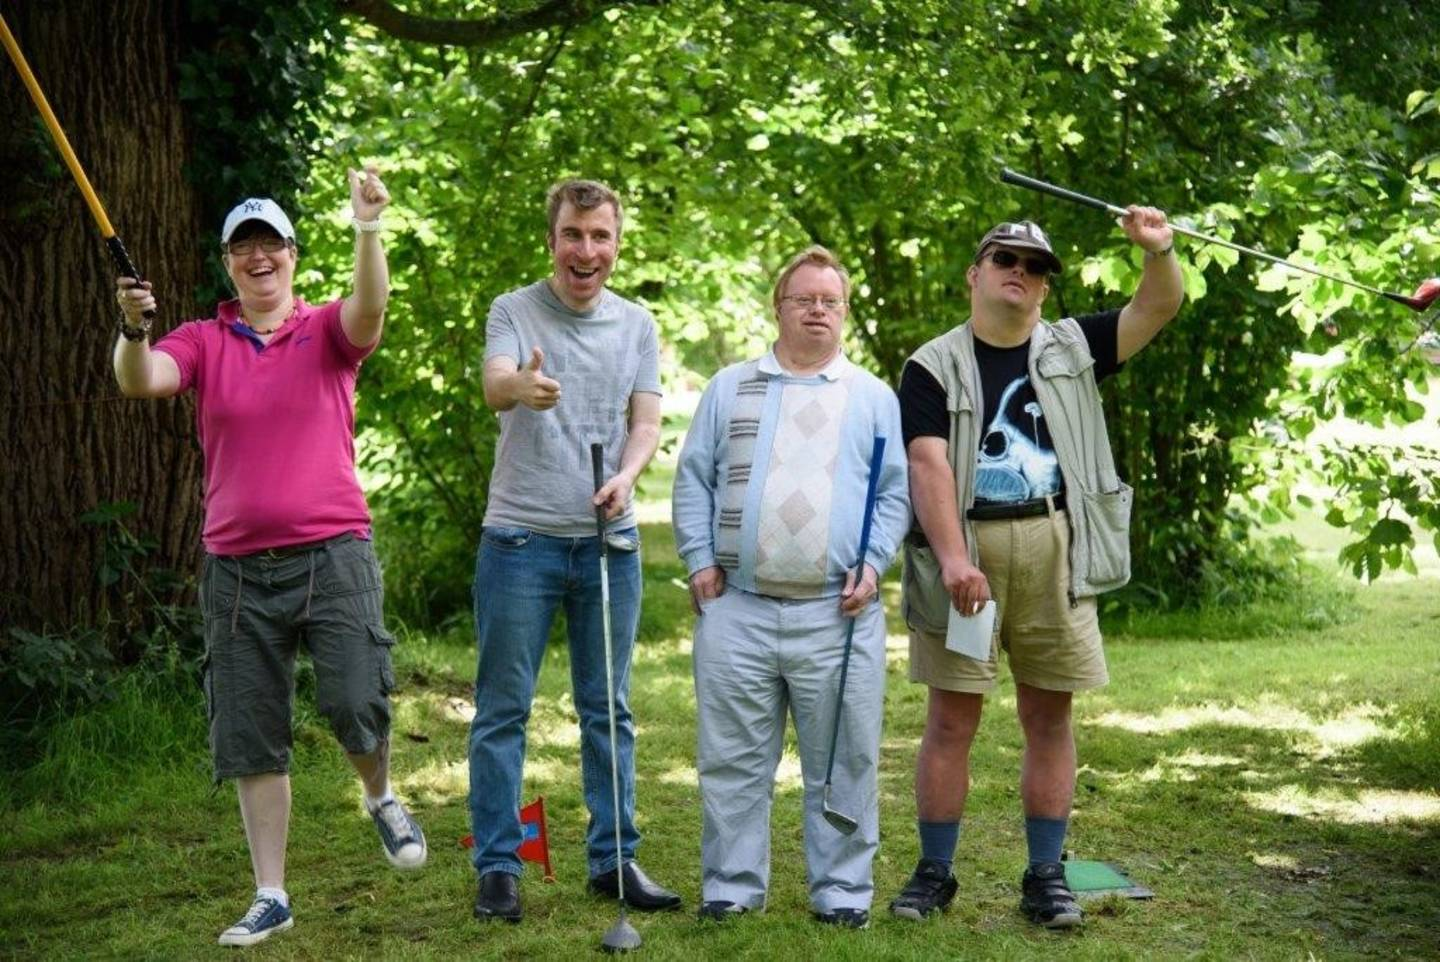 Disabled adults having fun playing golf